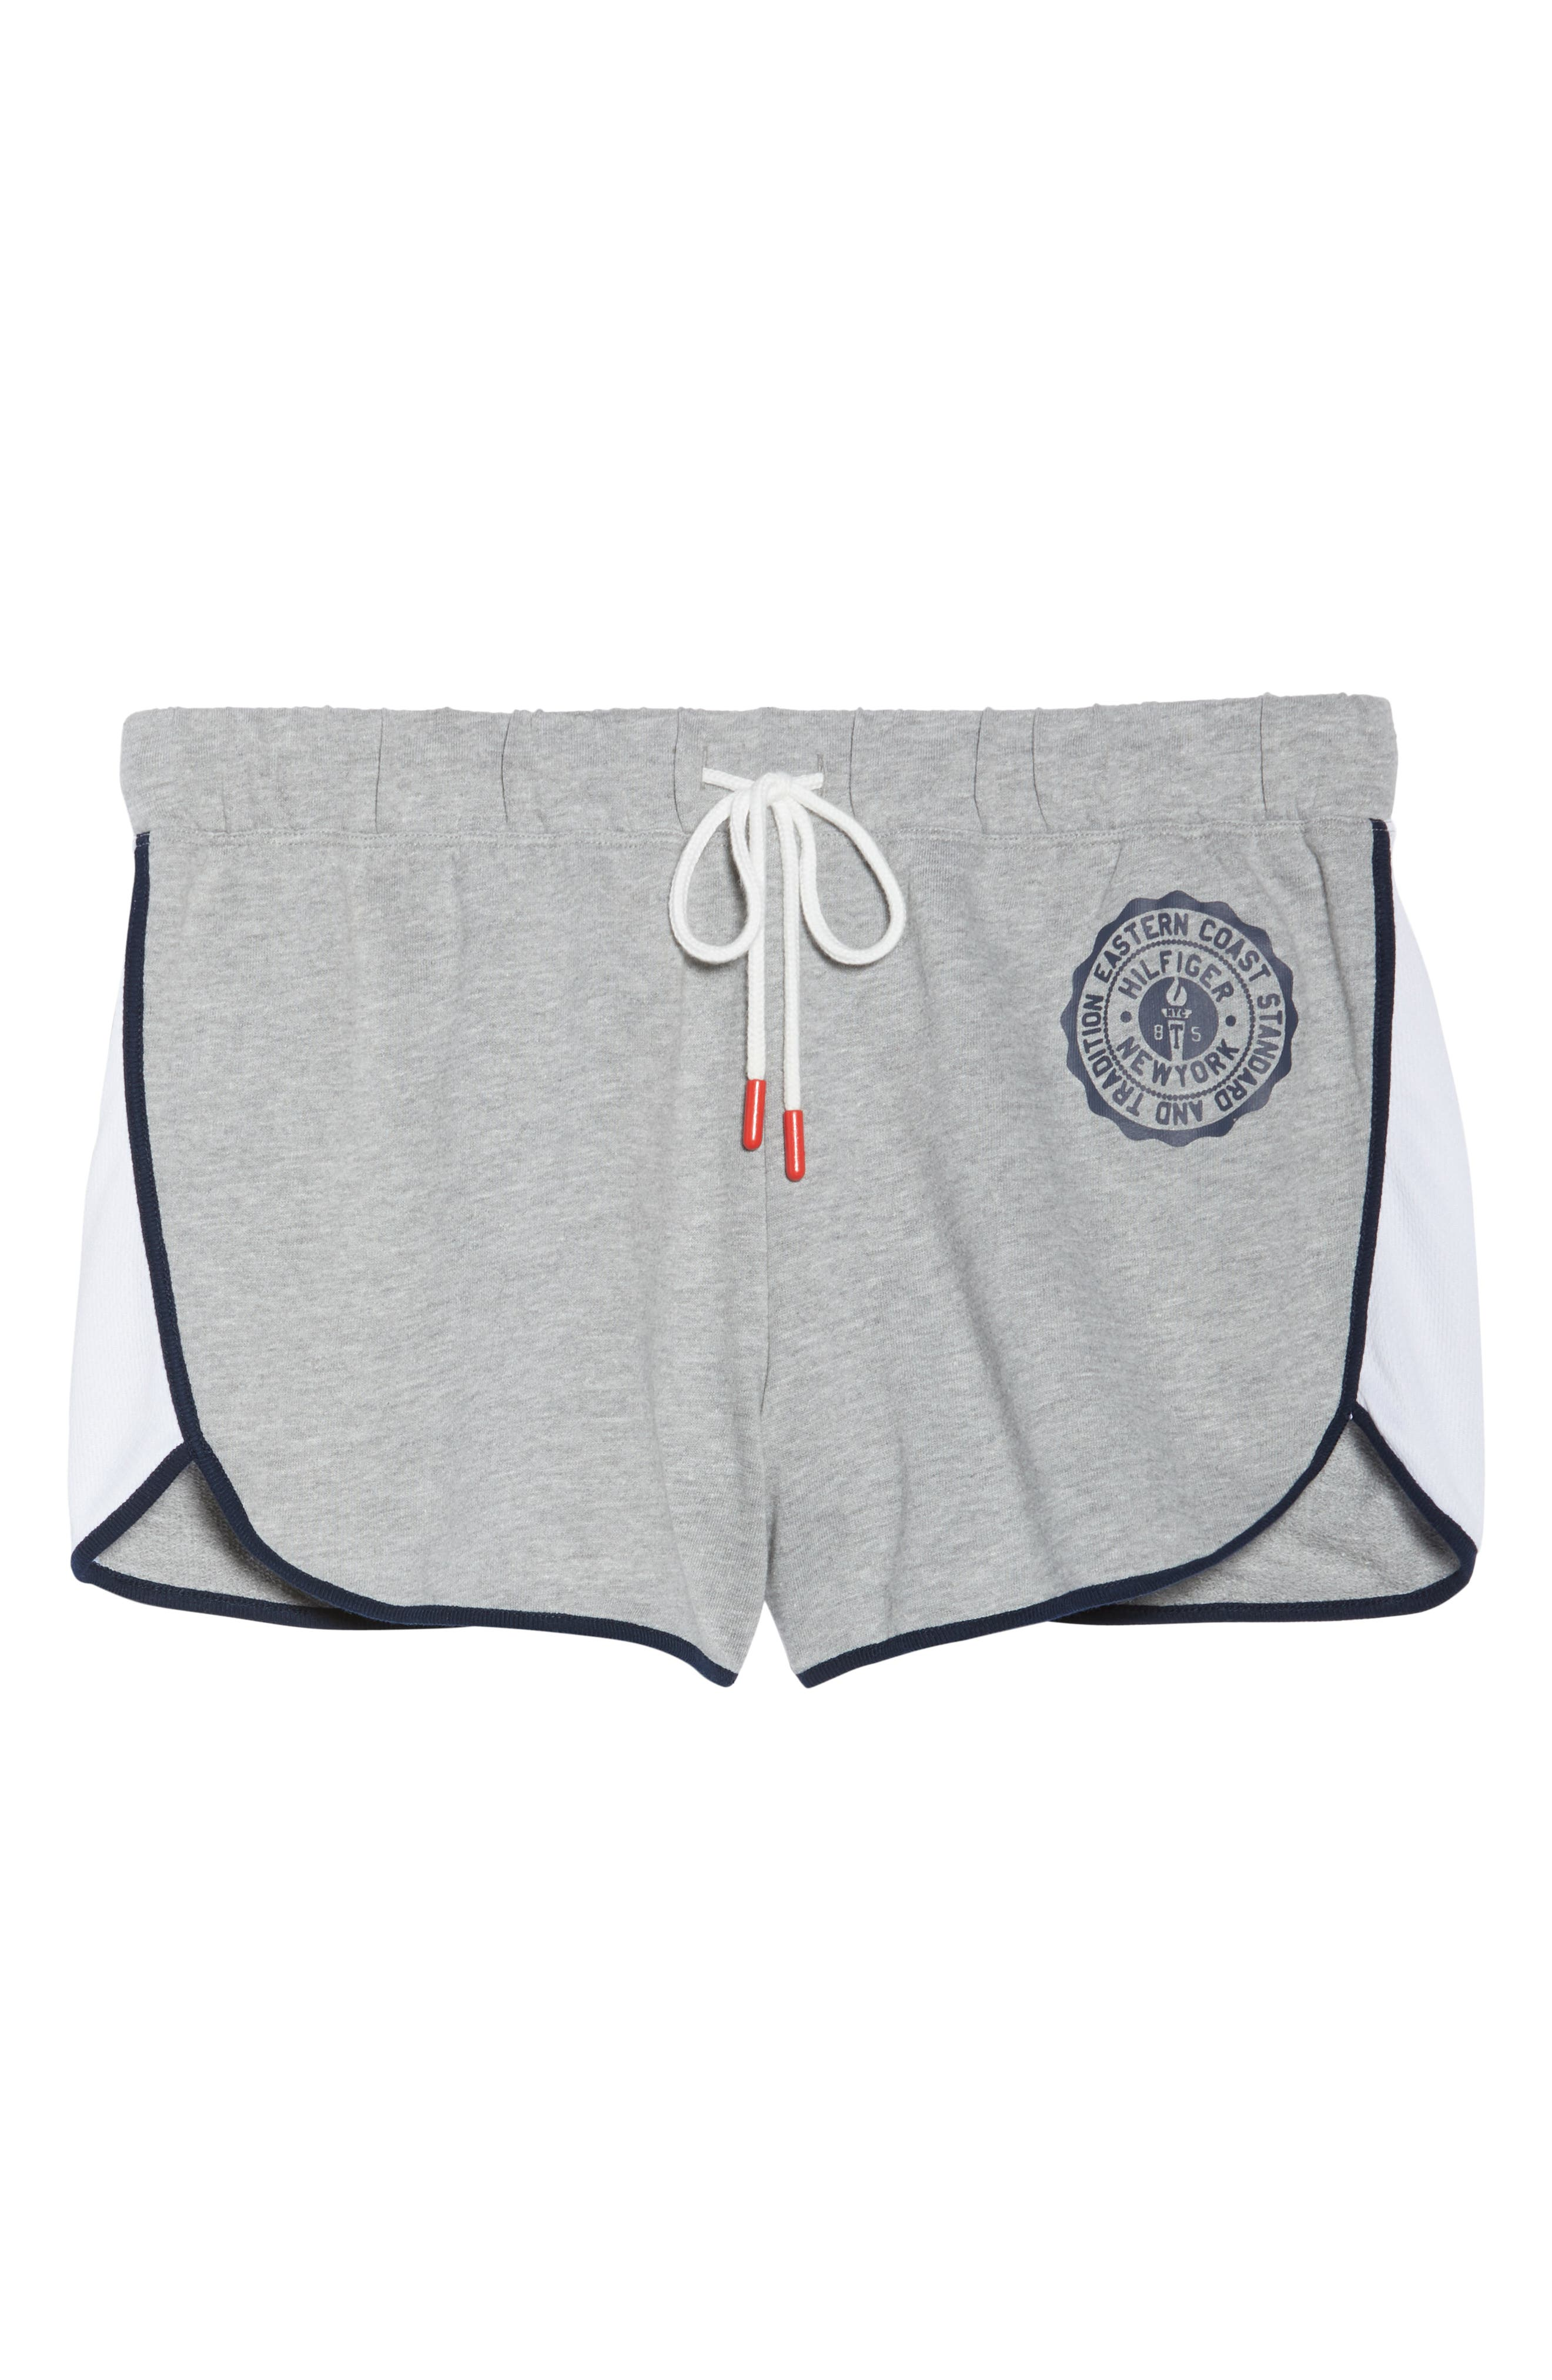 Lounge Shorts,                             Alternate thumbnail 7, color,                             Heather Gray